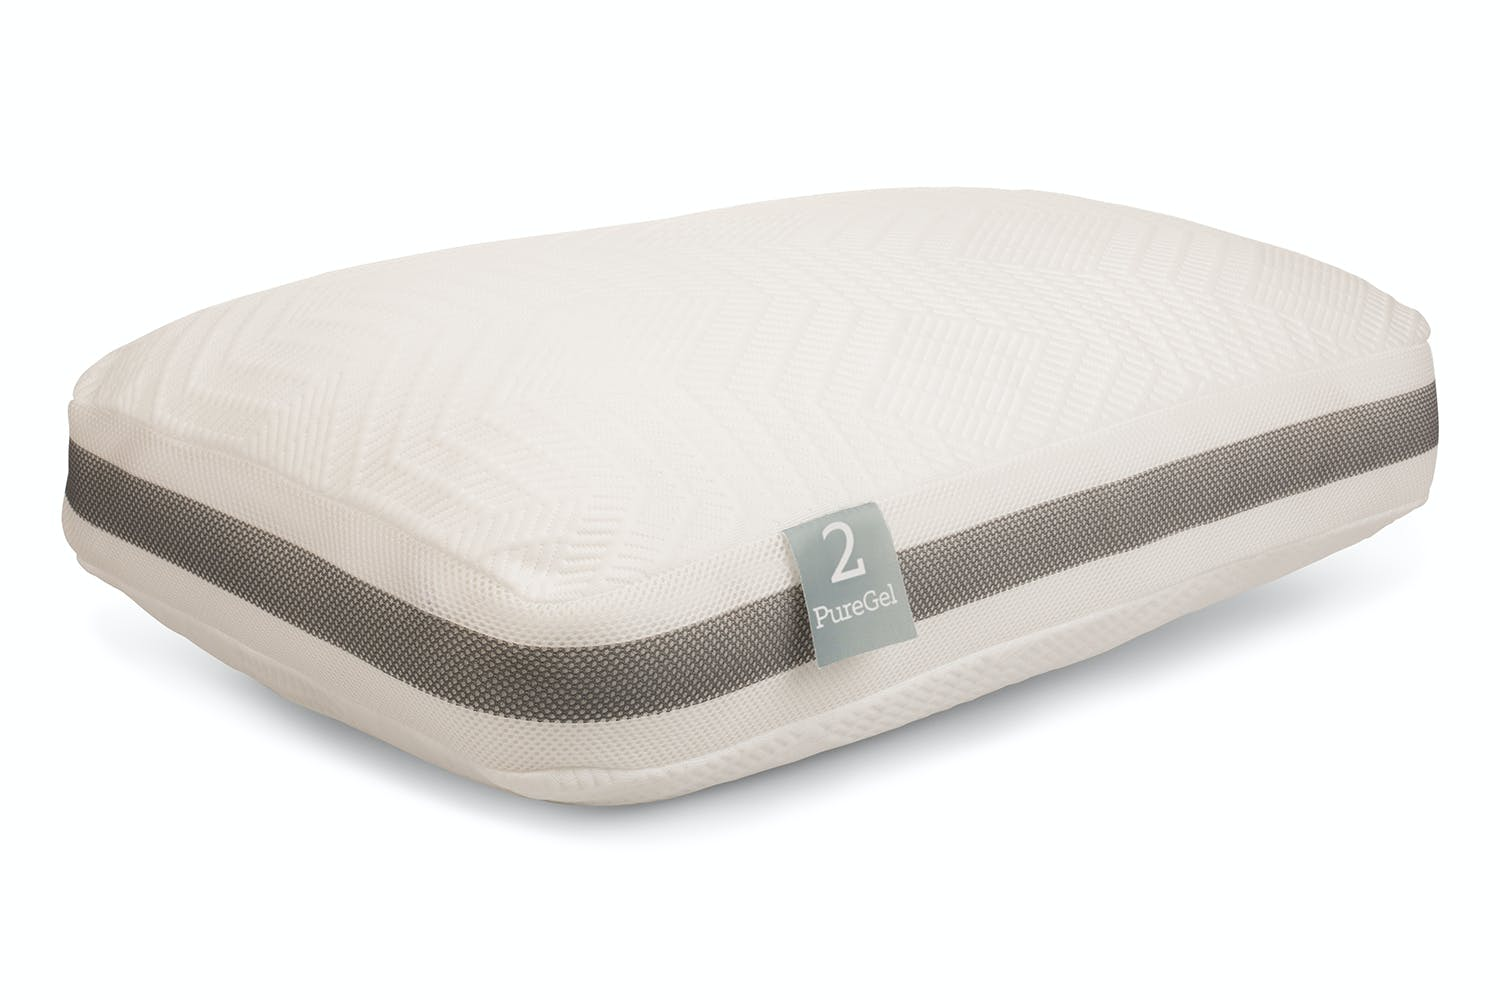 Sleep Studio Pillow | PureGel |2